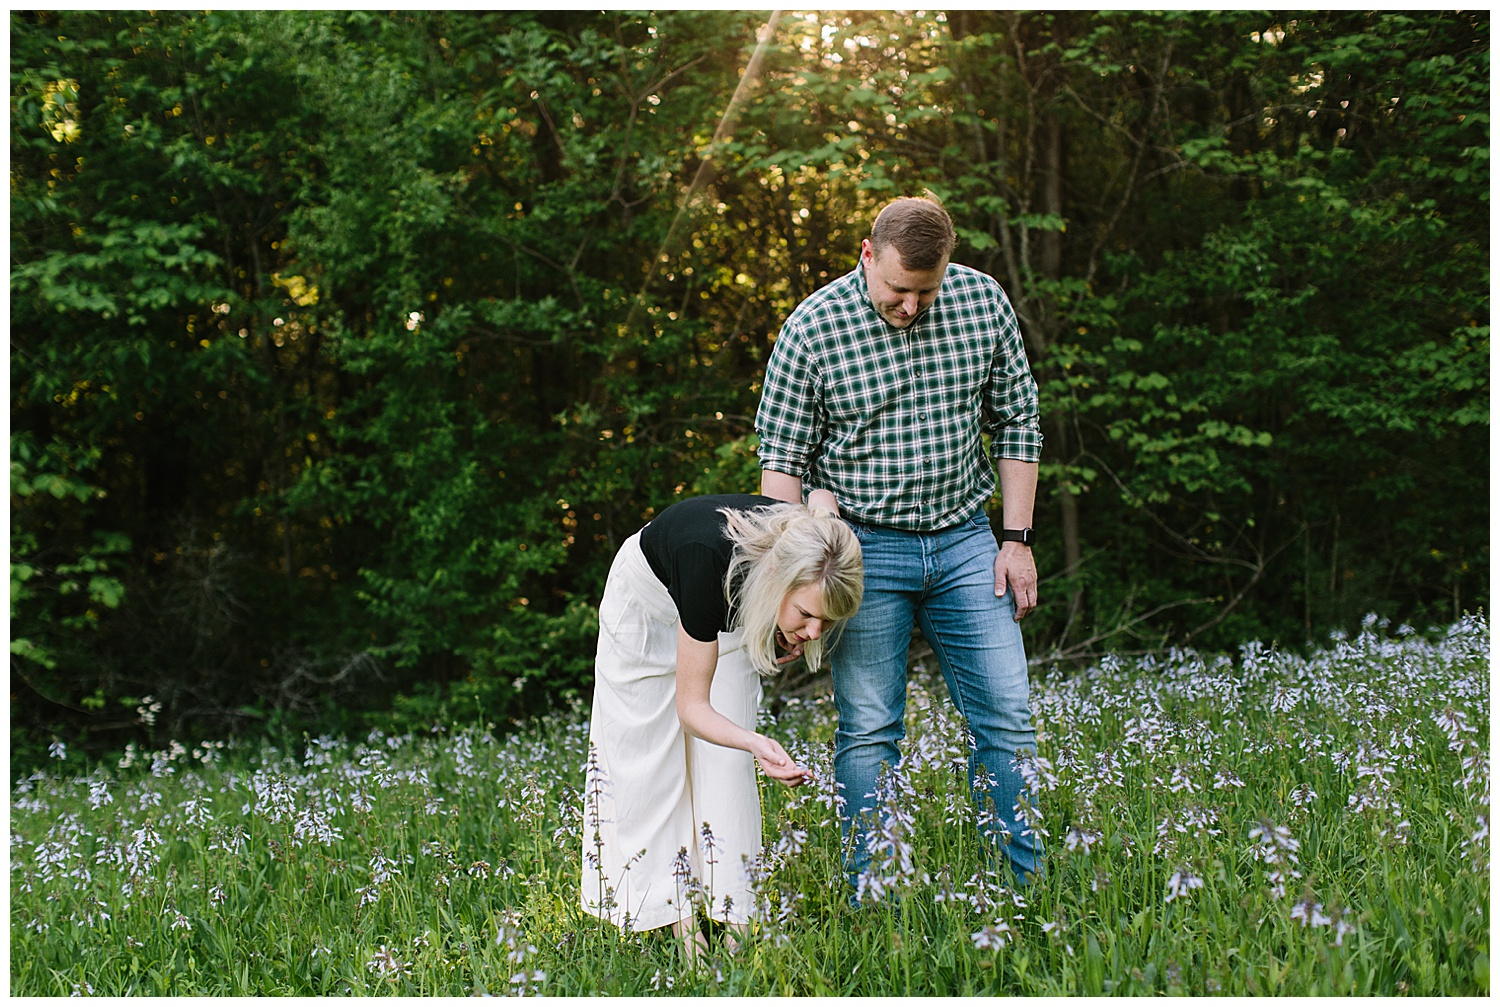 trent.and.kendra.photography.bernheim.forest.photos-27.jpg